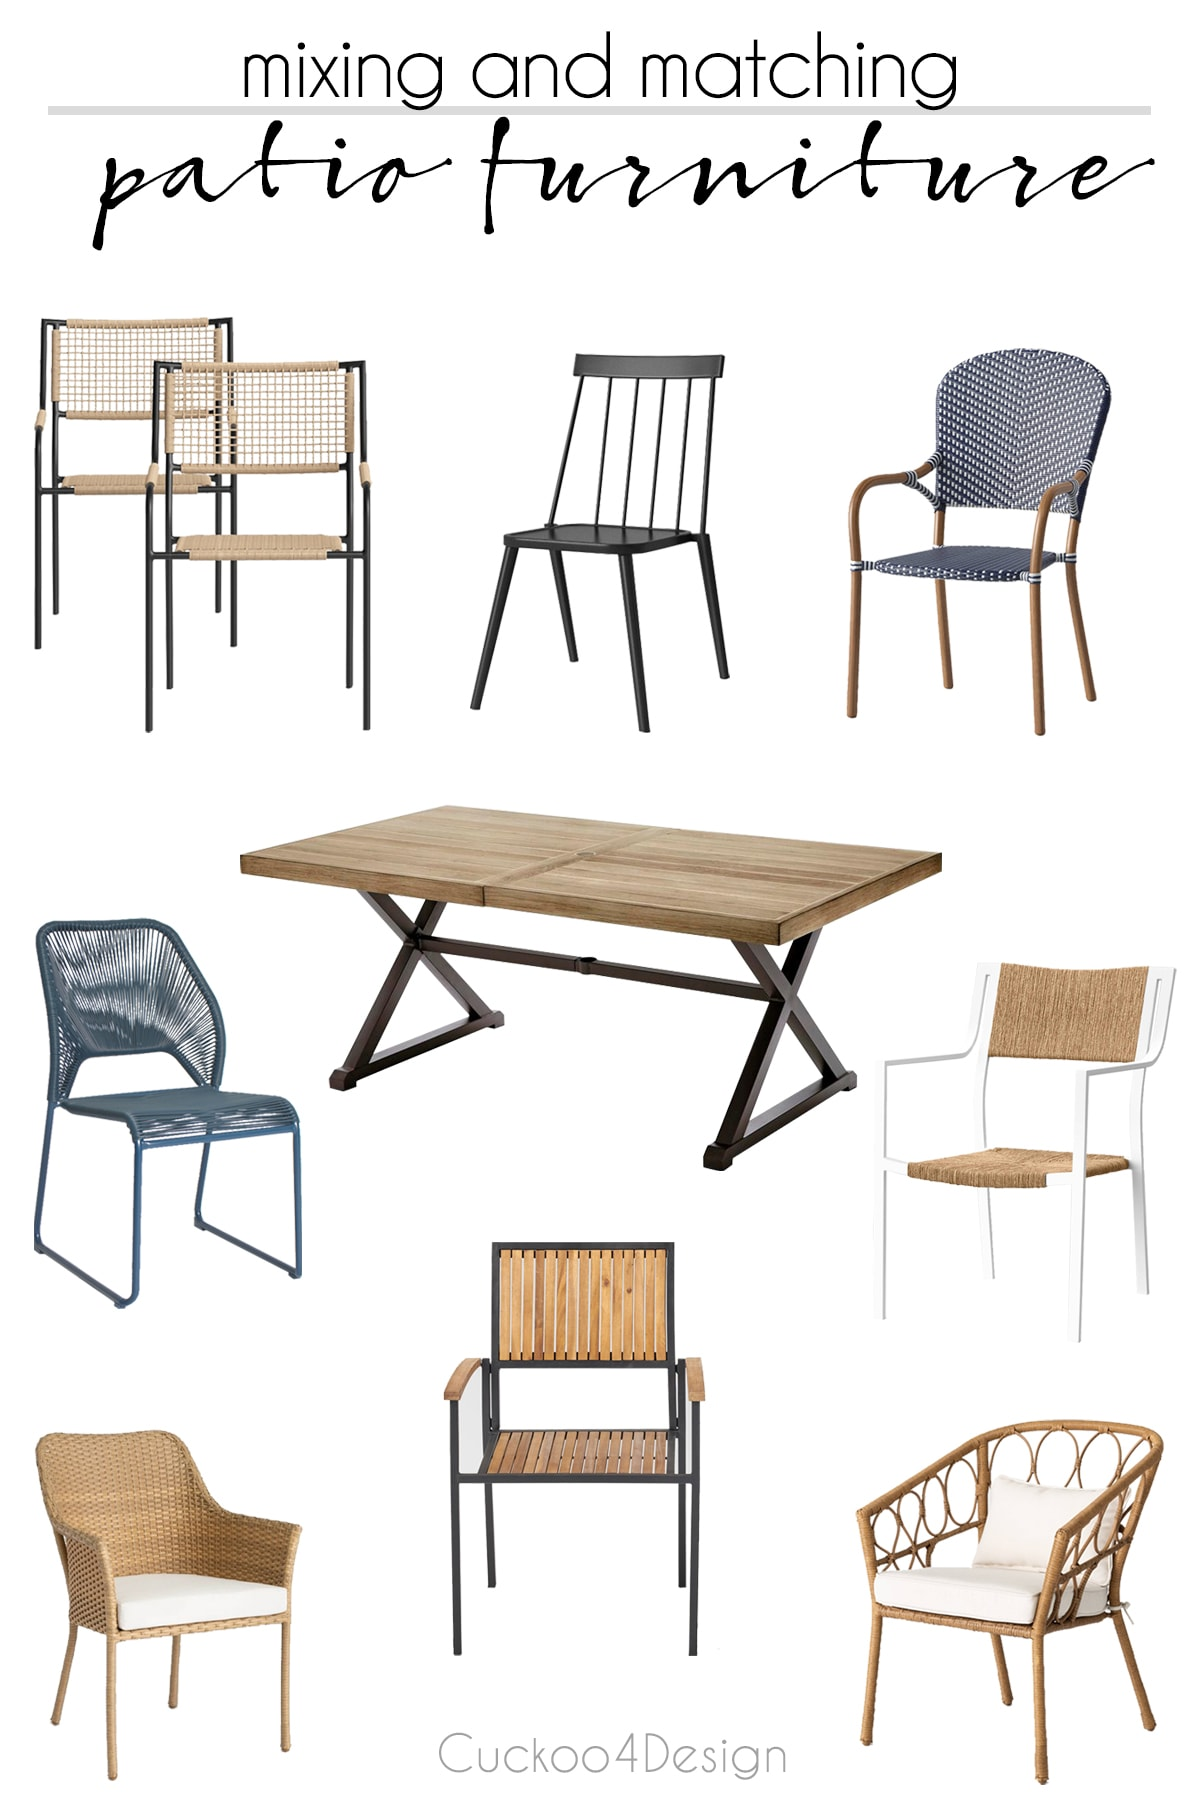 mix and match patio furniture tips